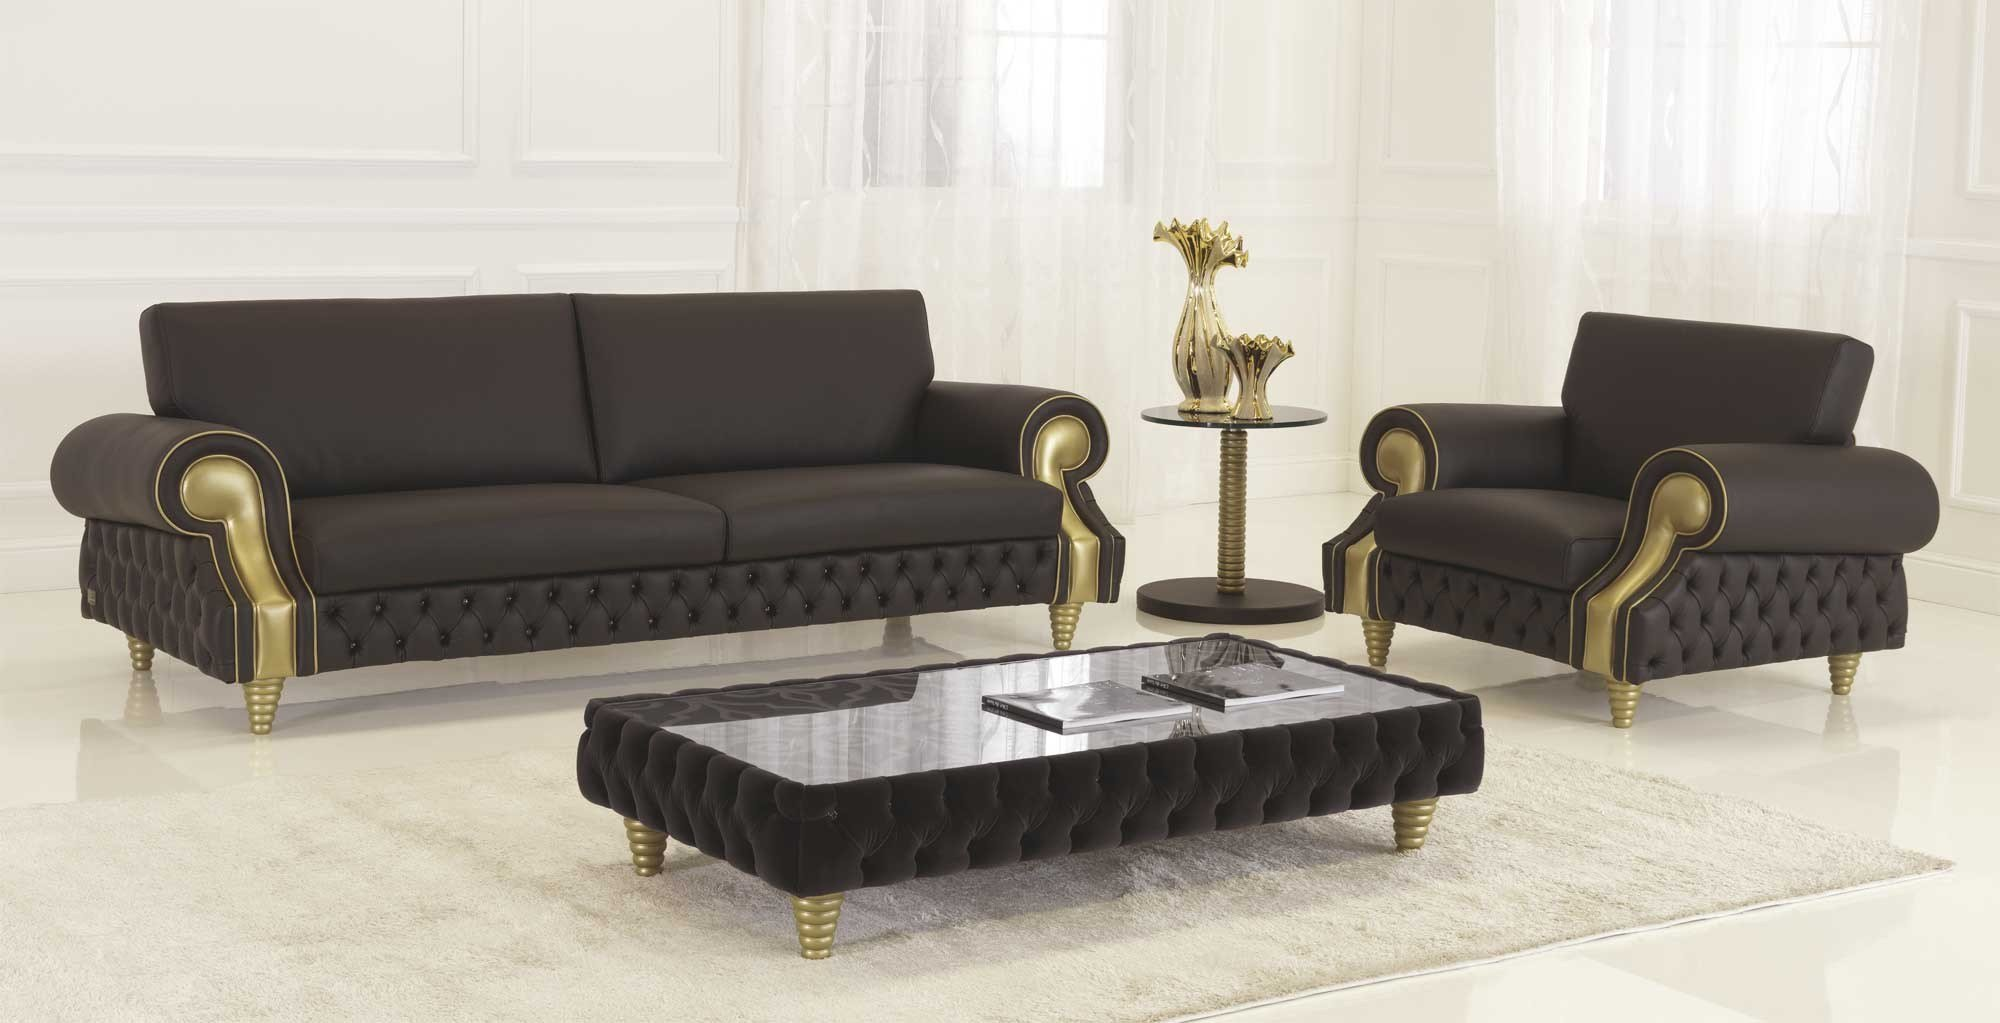 Tufted leather sofa NOBILITY By Formenti